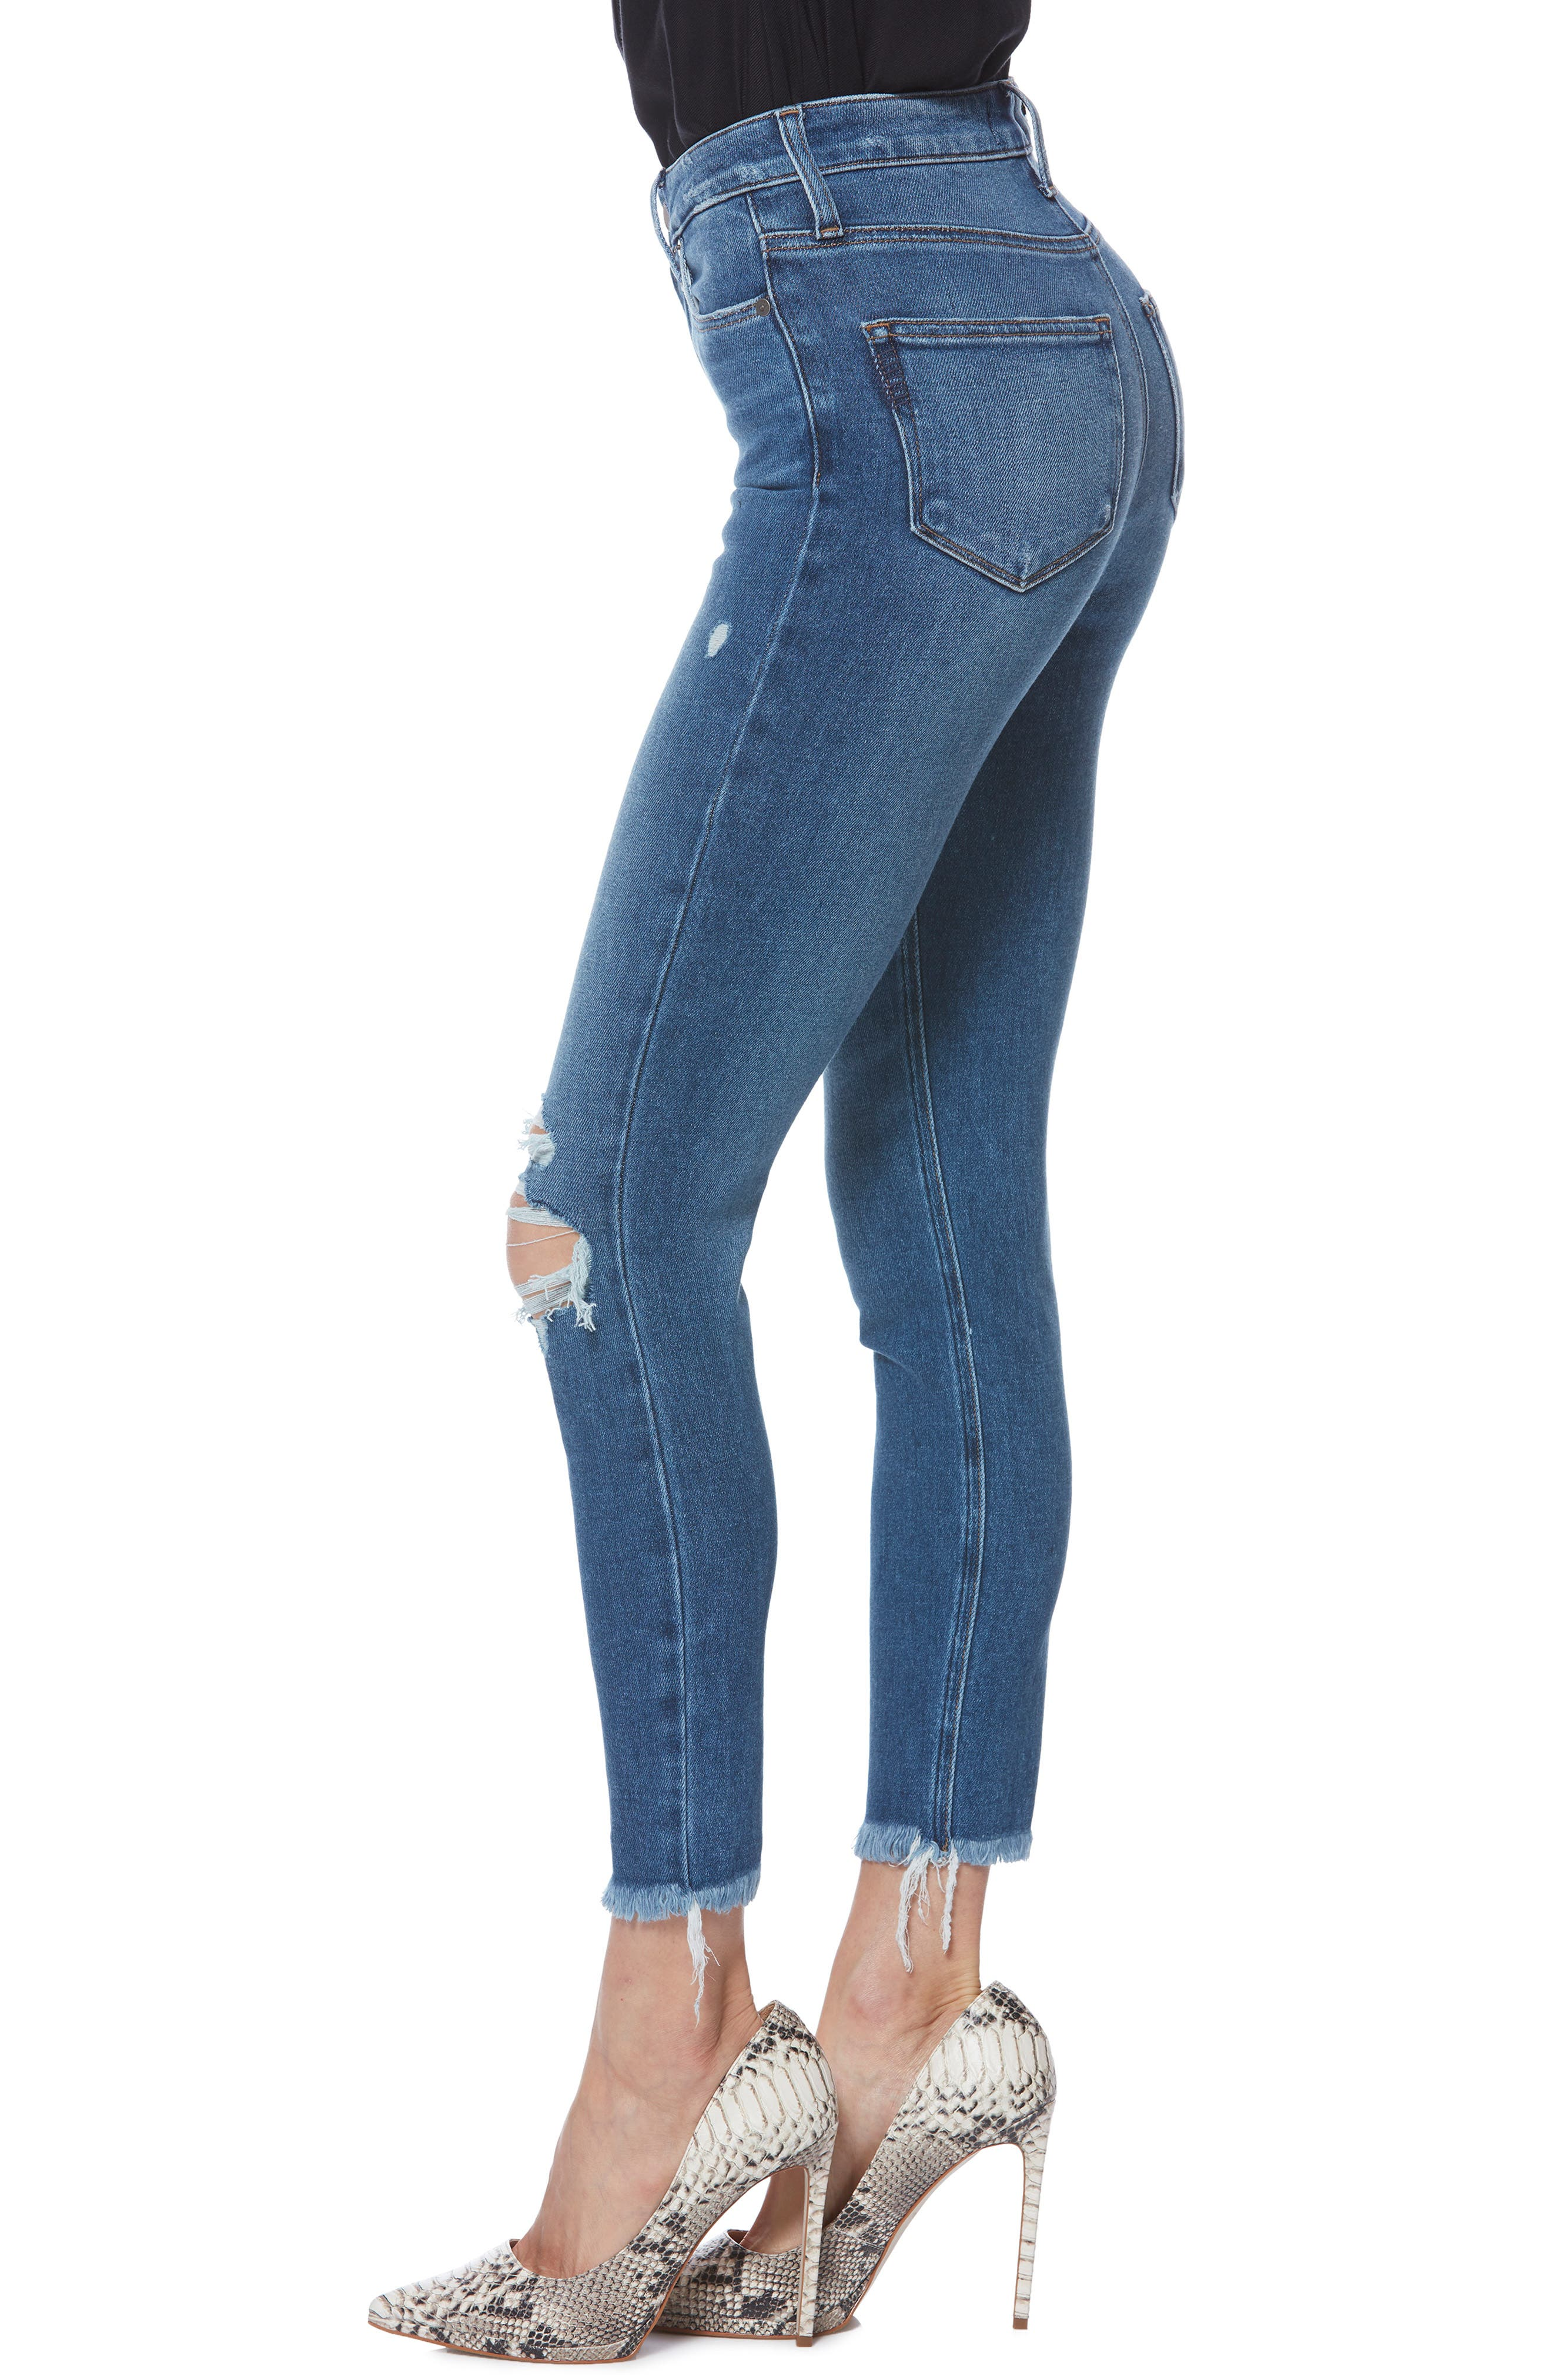 PAIGE, Margot High Waist Crop Skinny Jeans, Alternate thumbnail 3, color, ALESSIO DESTRUCTED